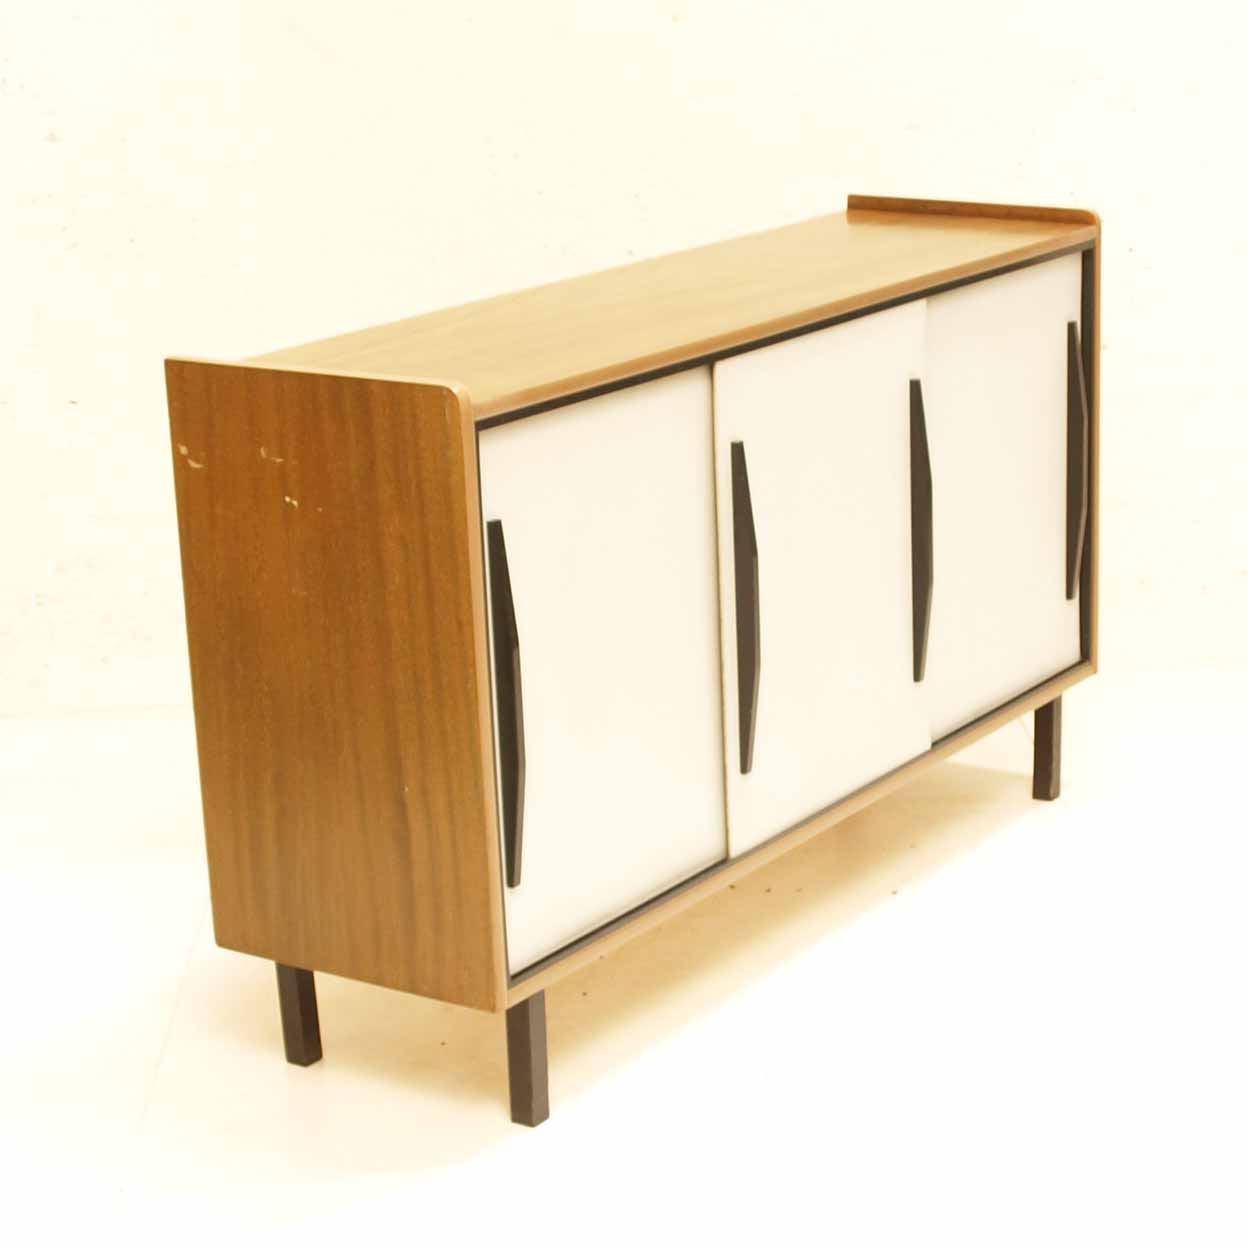 50s sideboard mit weissen schiebet ren m bel z rich. Black Bedroom Furniture Sets. Home Design Ideas